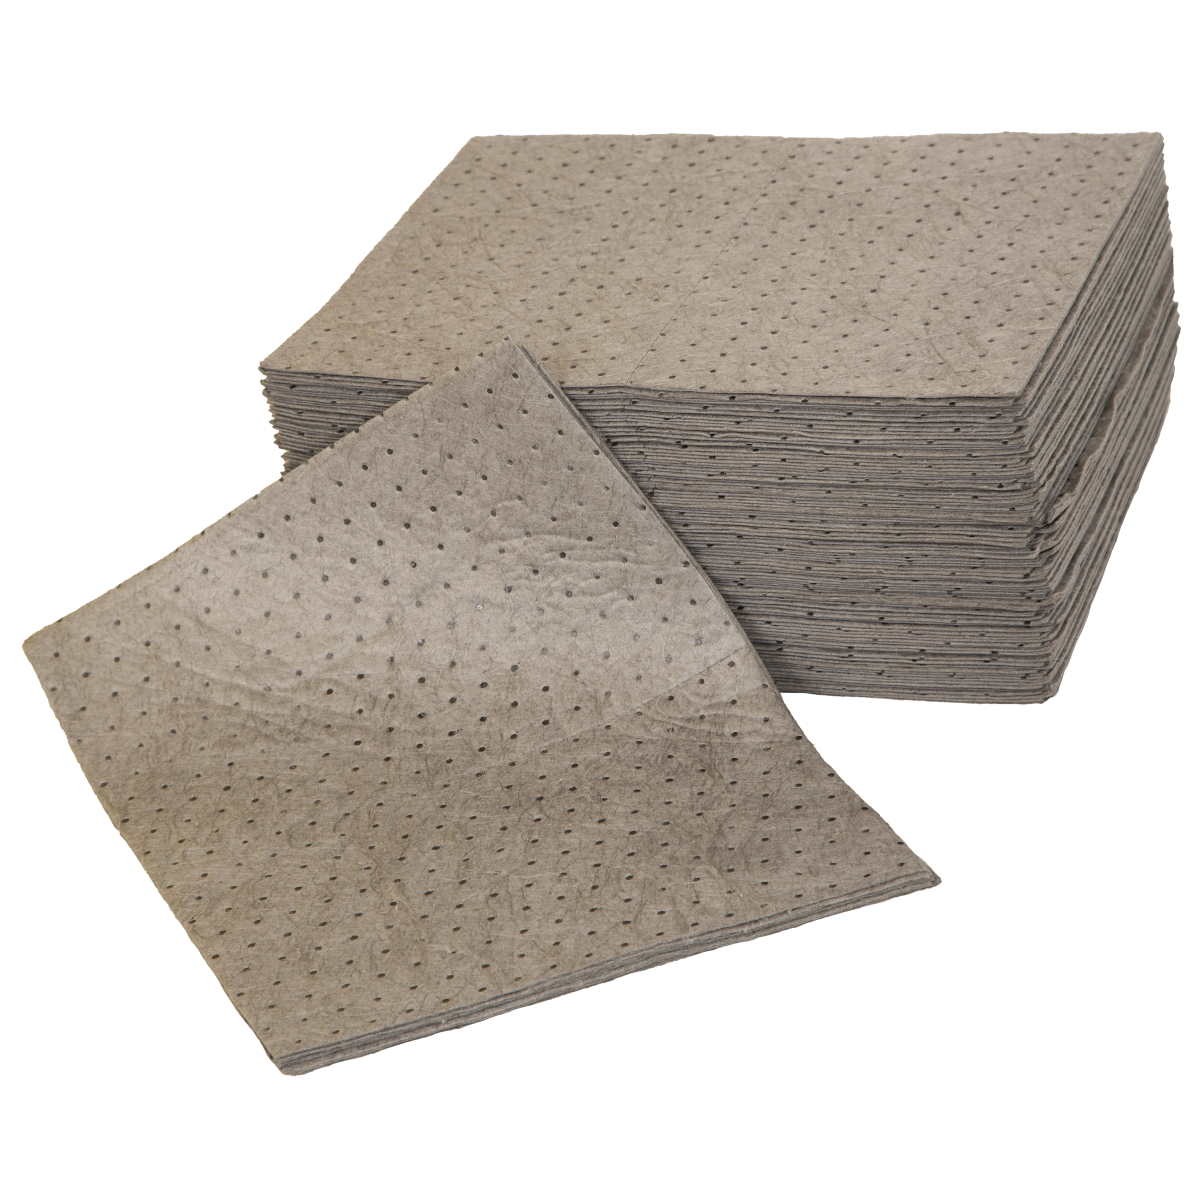 Pack of 100 Absorbent Spill Pads General Purpose 40x50cm